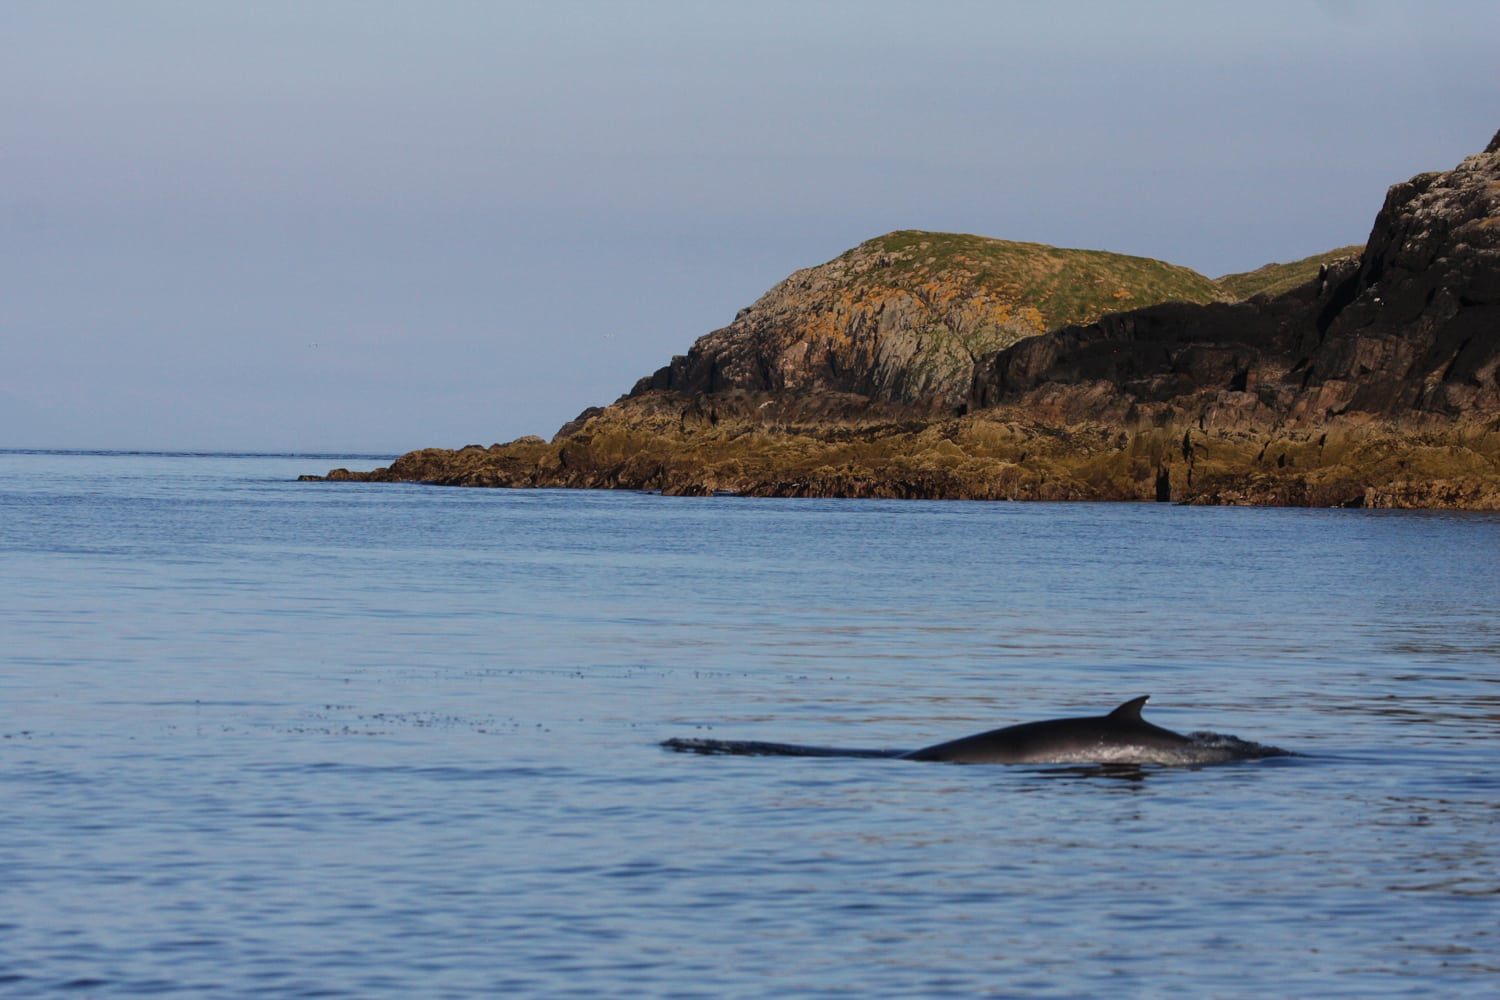 Minke whale in Scottish waters